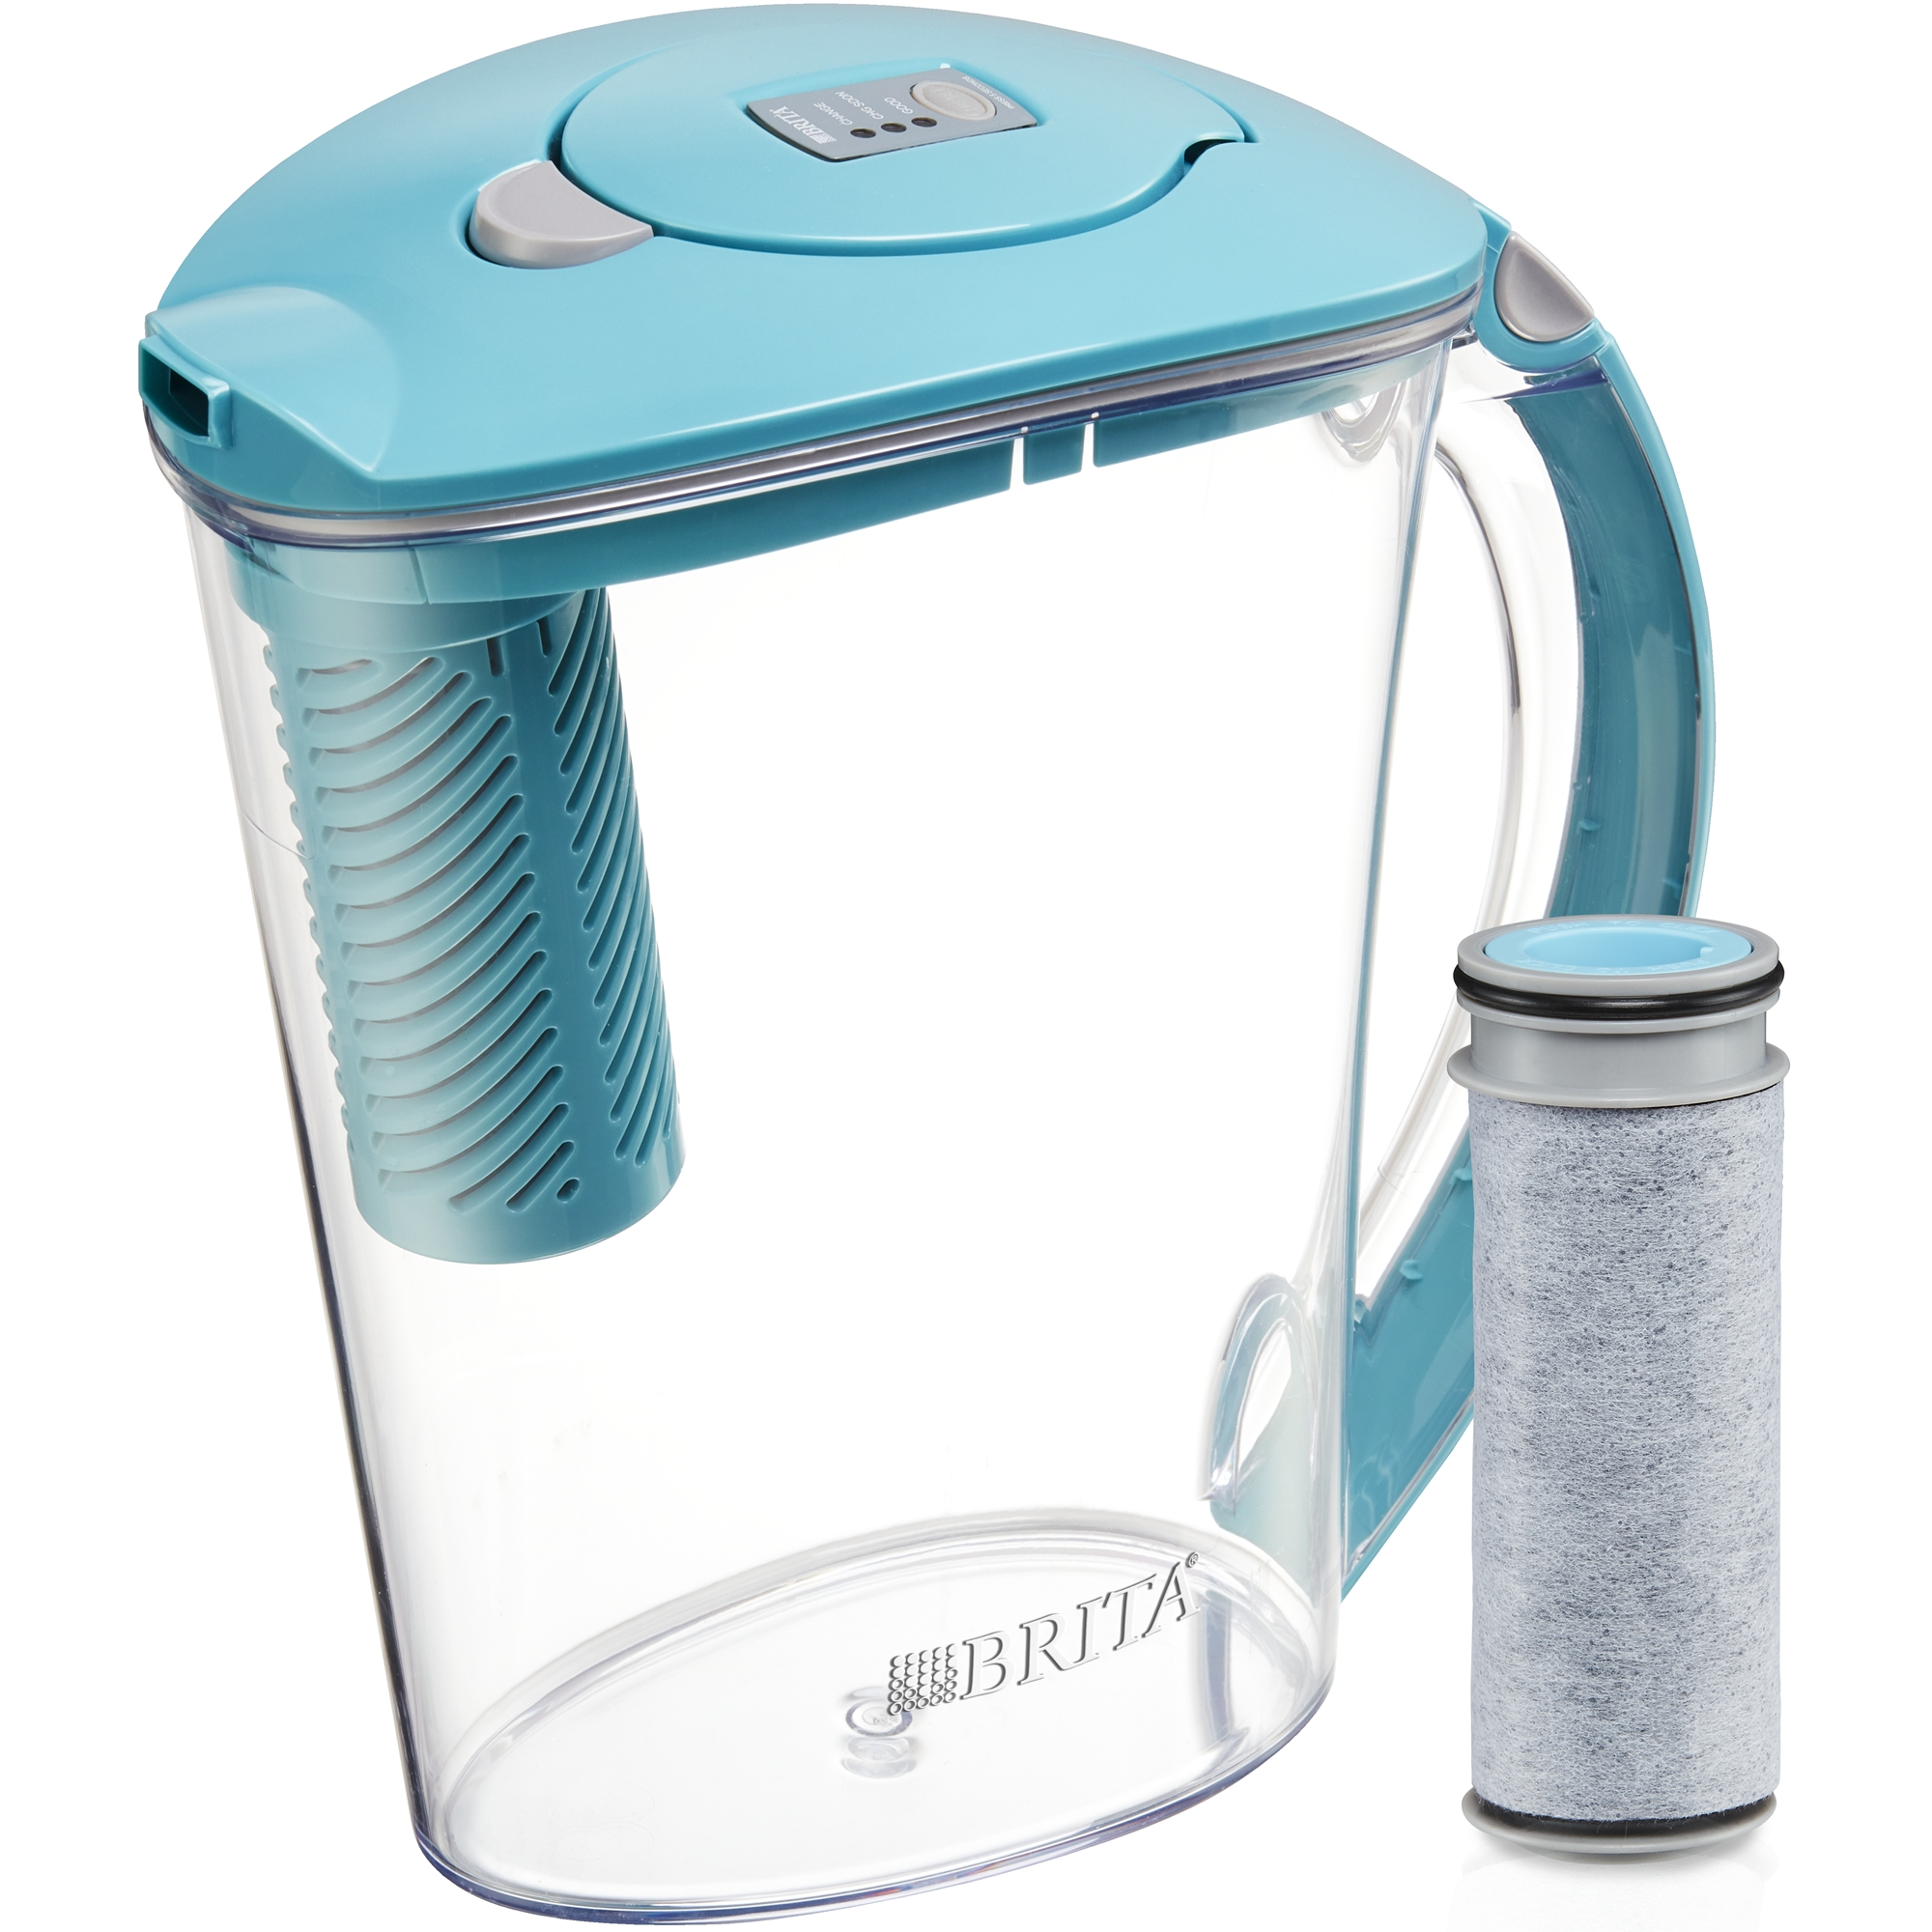 Brita Stream Filter as You Pour Water Pitcher with 1 Filter, Hydro, BPA Free, Chalk White, 10 Cup